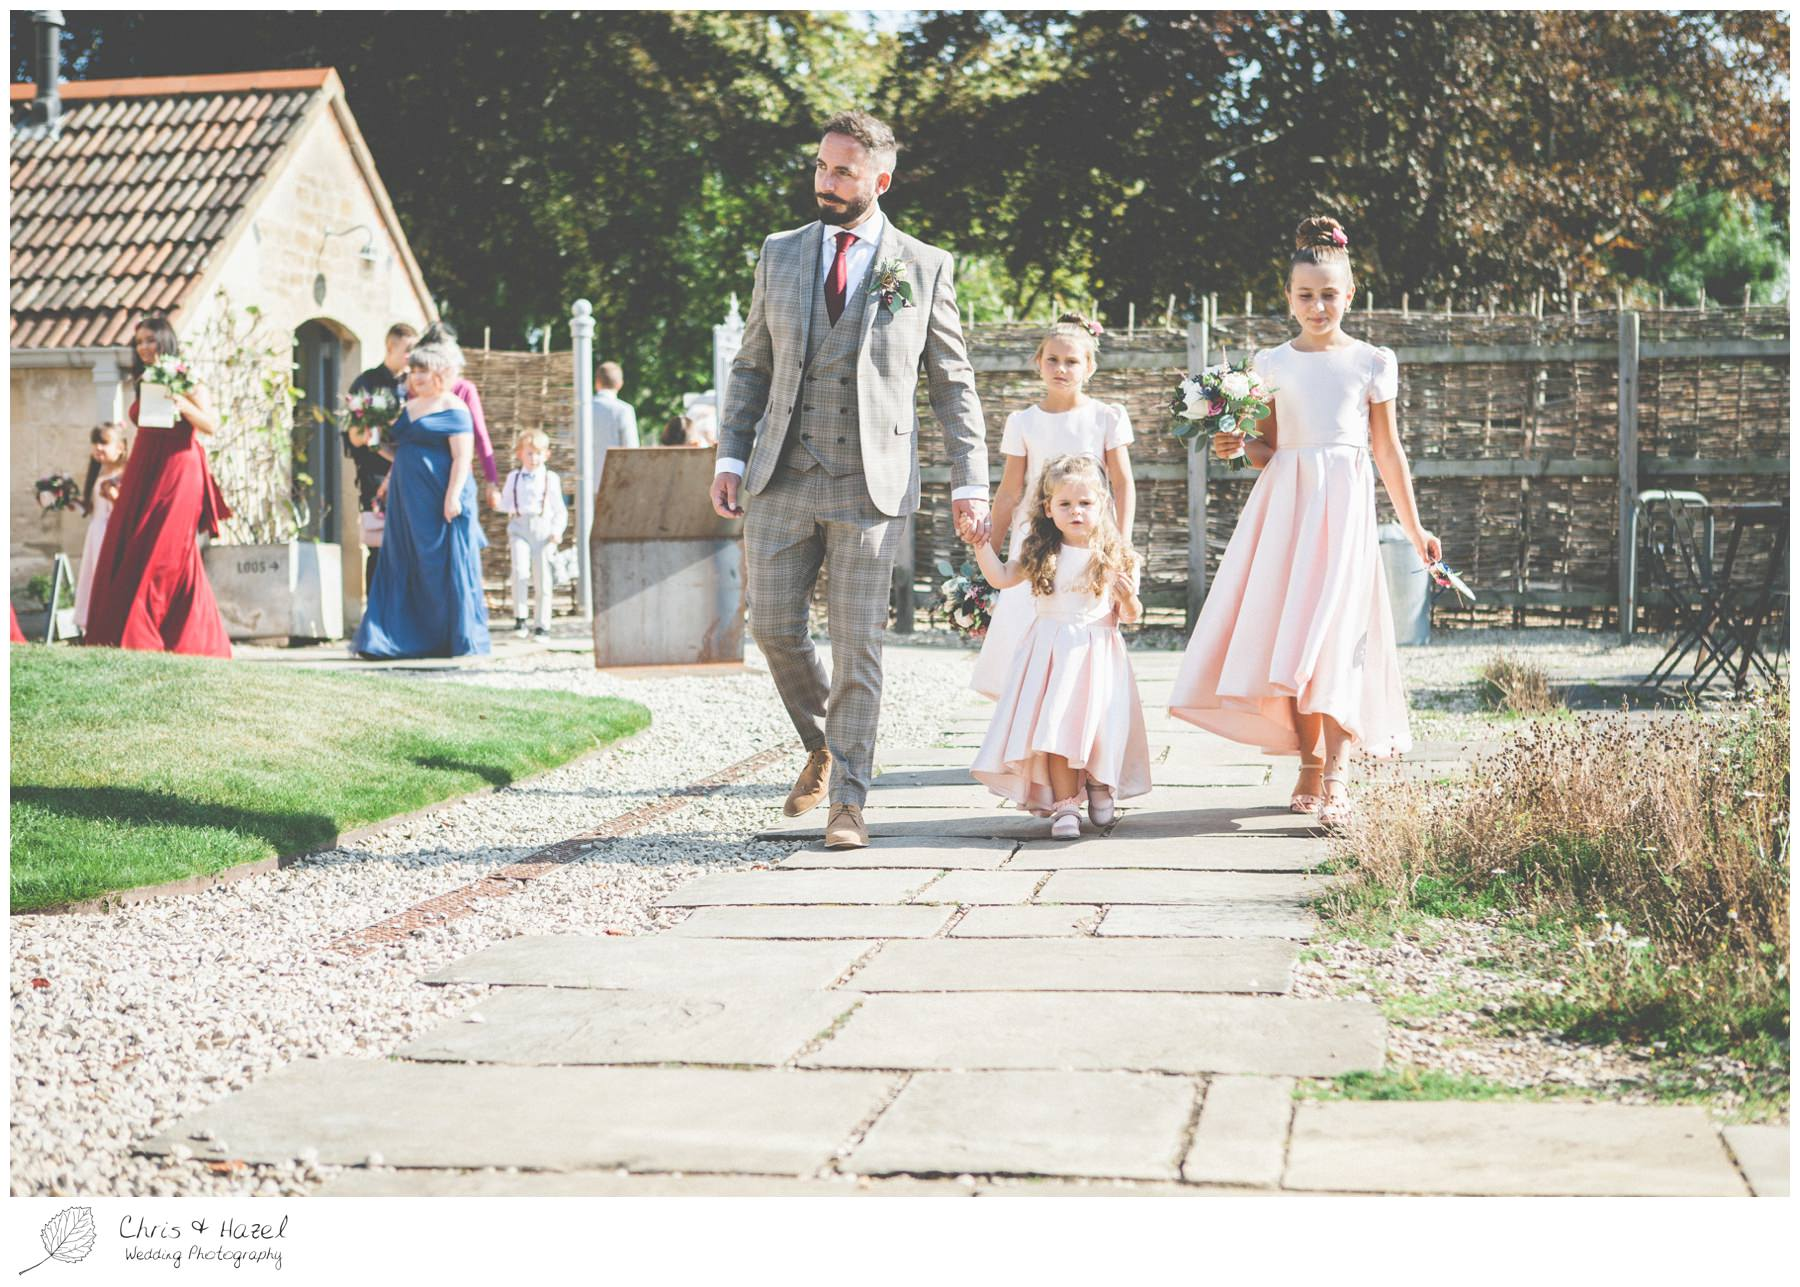 Bridesmaids flower girls outside The Glove Factory Wedding Photography, Wiltshire Wedding Photographer Trowbridge, Chris and Hazel Wedding Photography